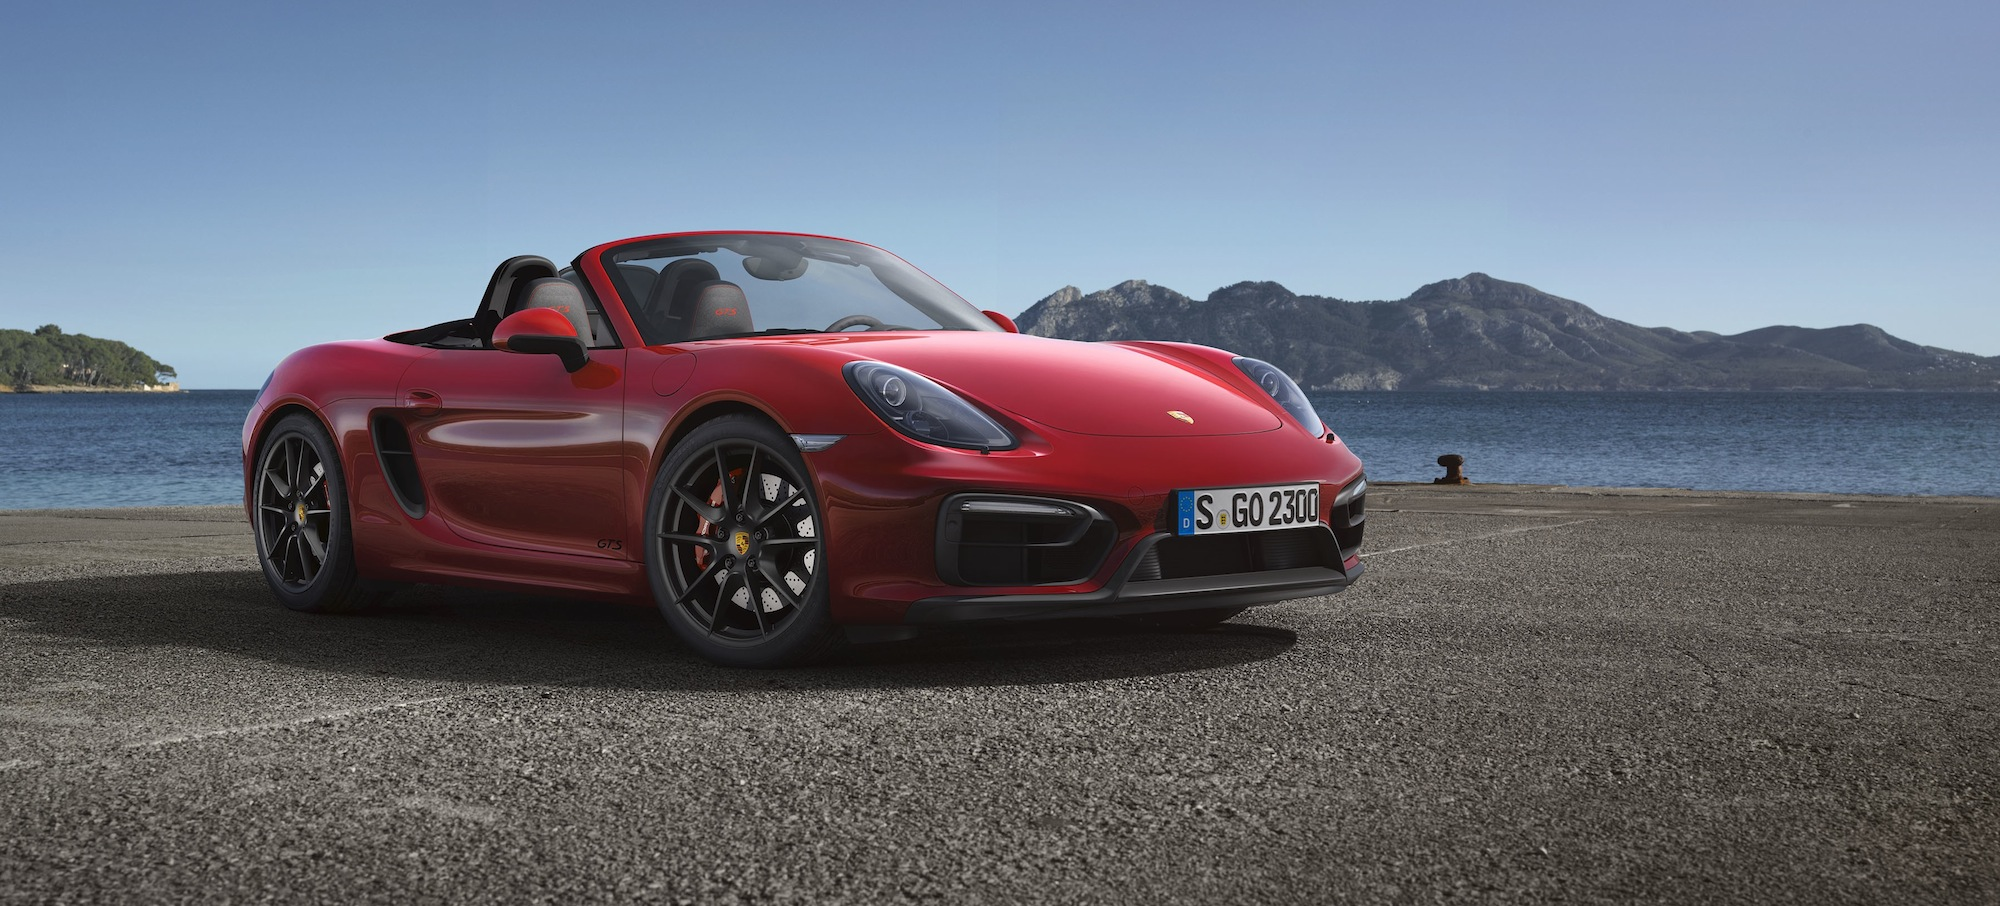 2014 porsche cayman review ratings specs prices and photos. Black Bedroom Furniture Sets. Home Design Ideas